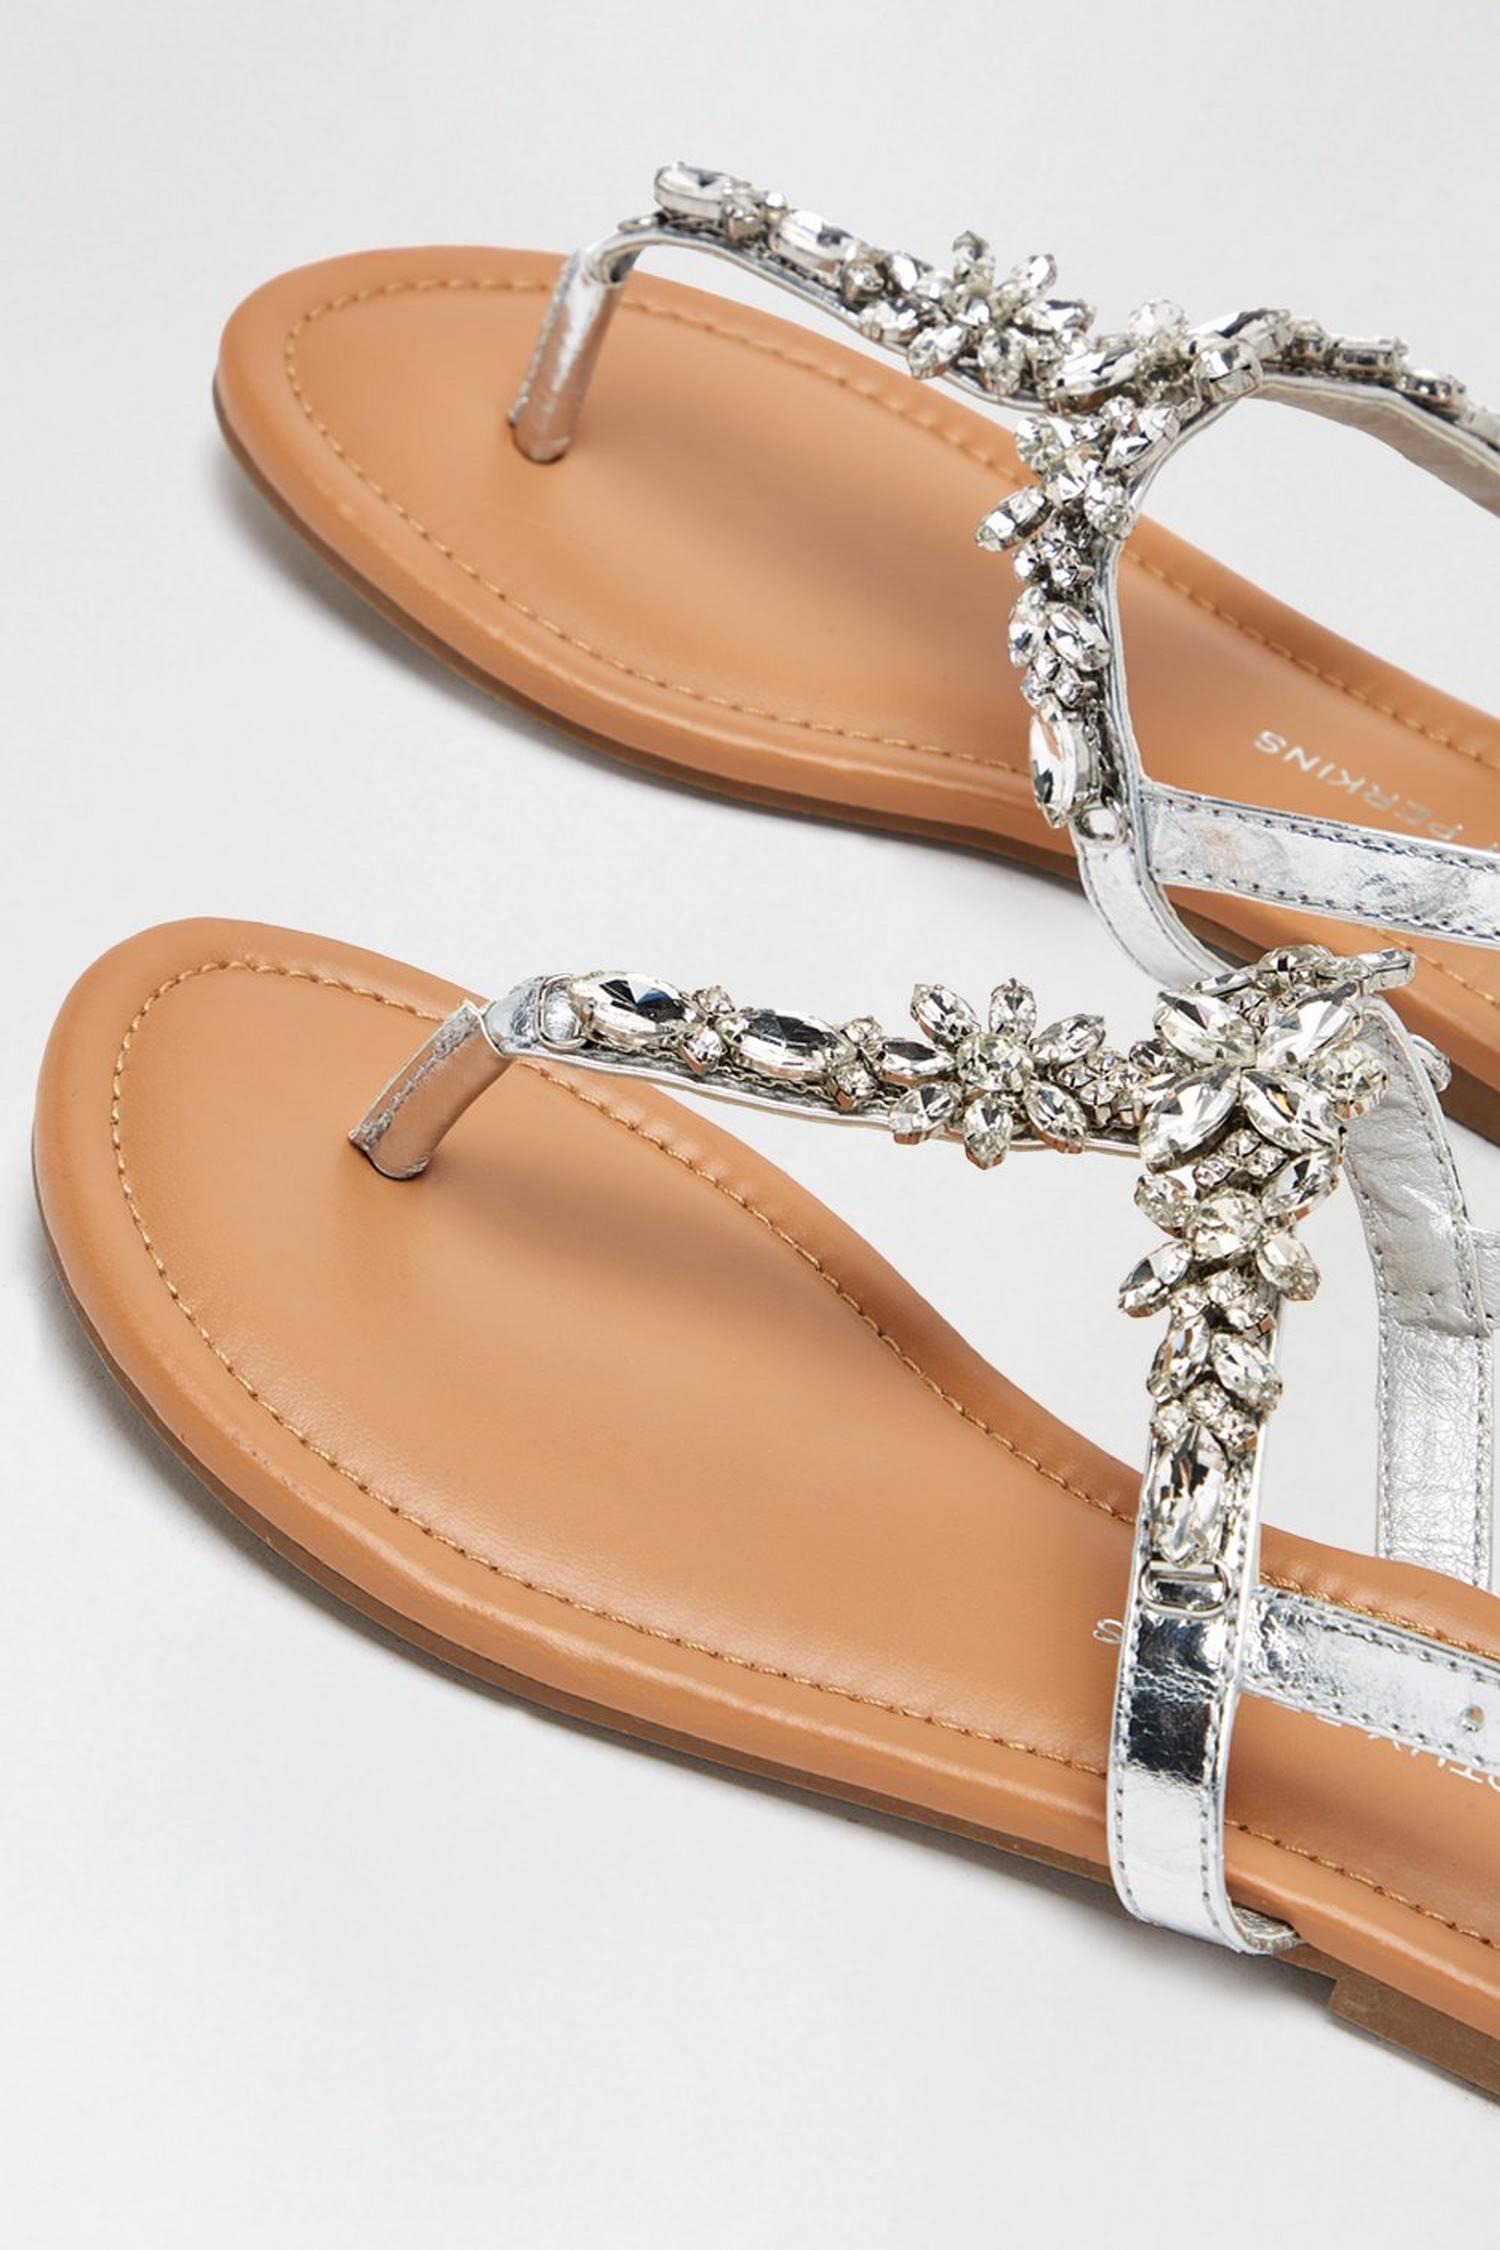 579 Silver Flower Jewel Sandals image number 3